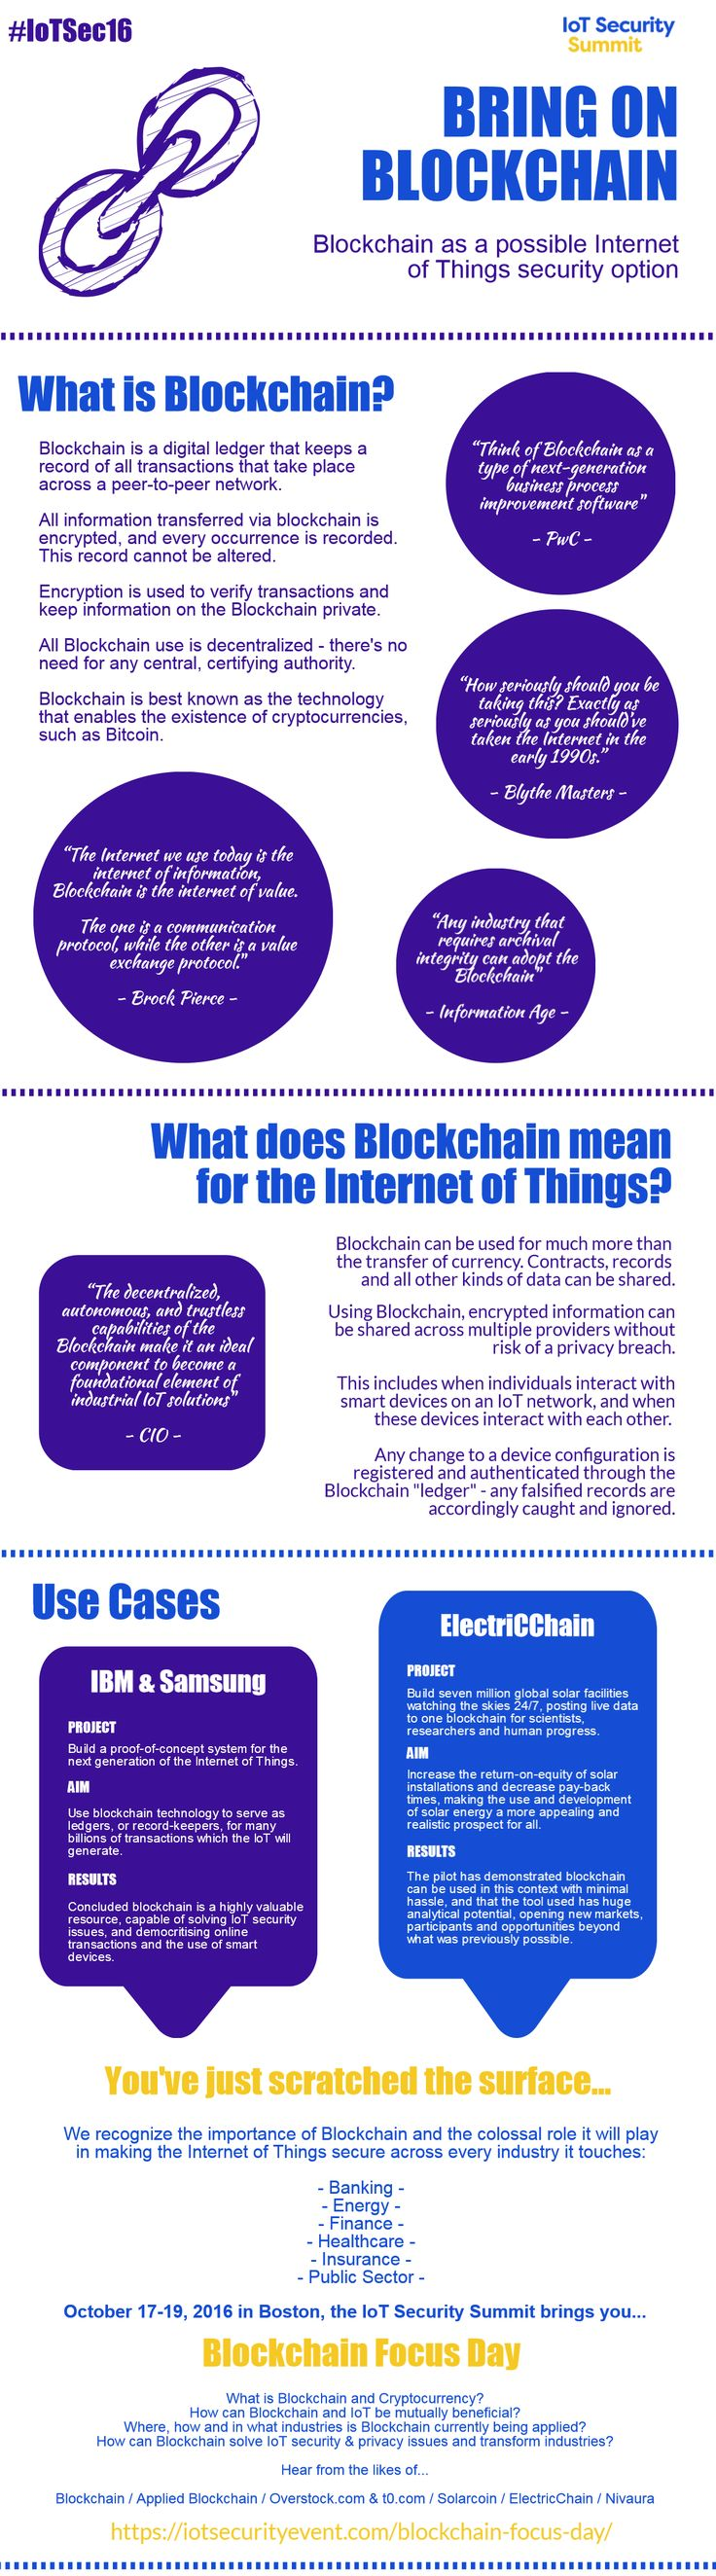 Blockchain, cybersecurity, infographic, internet of things, IoT